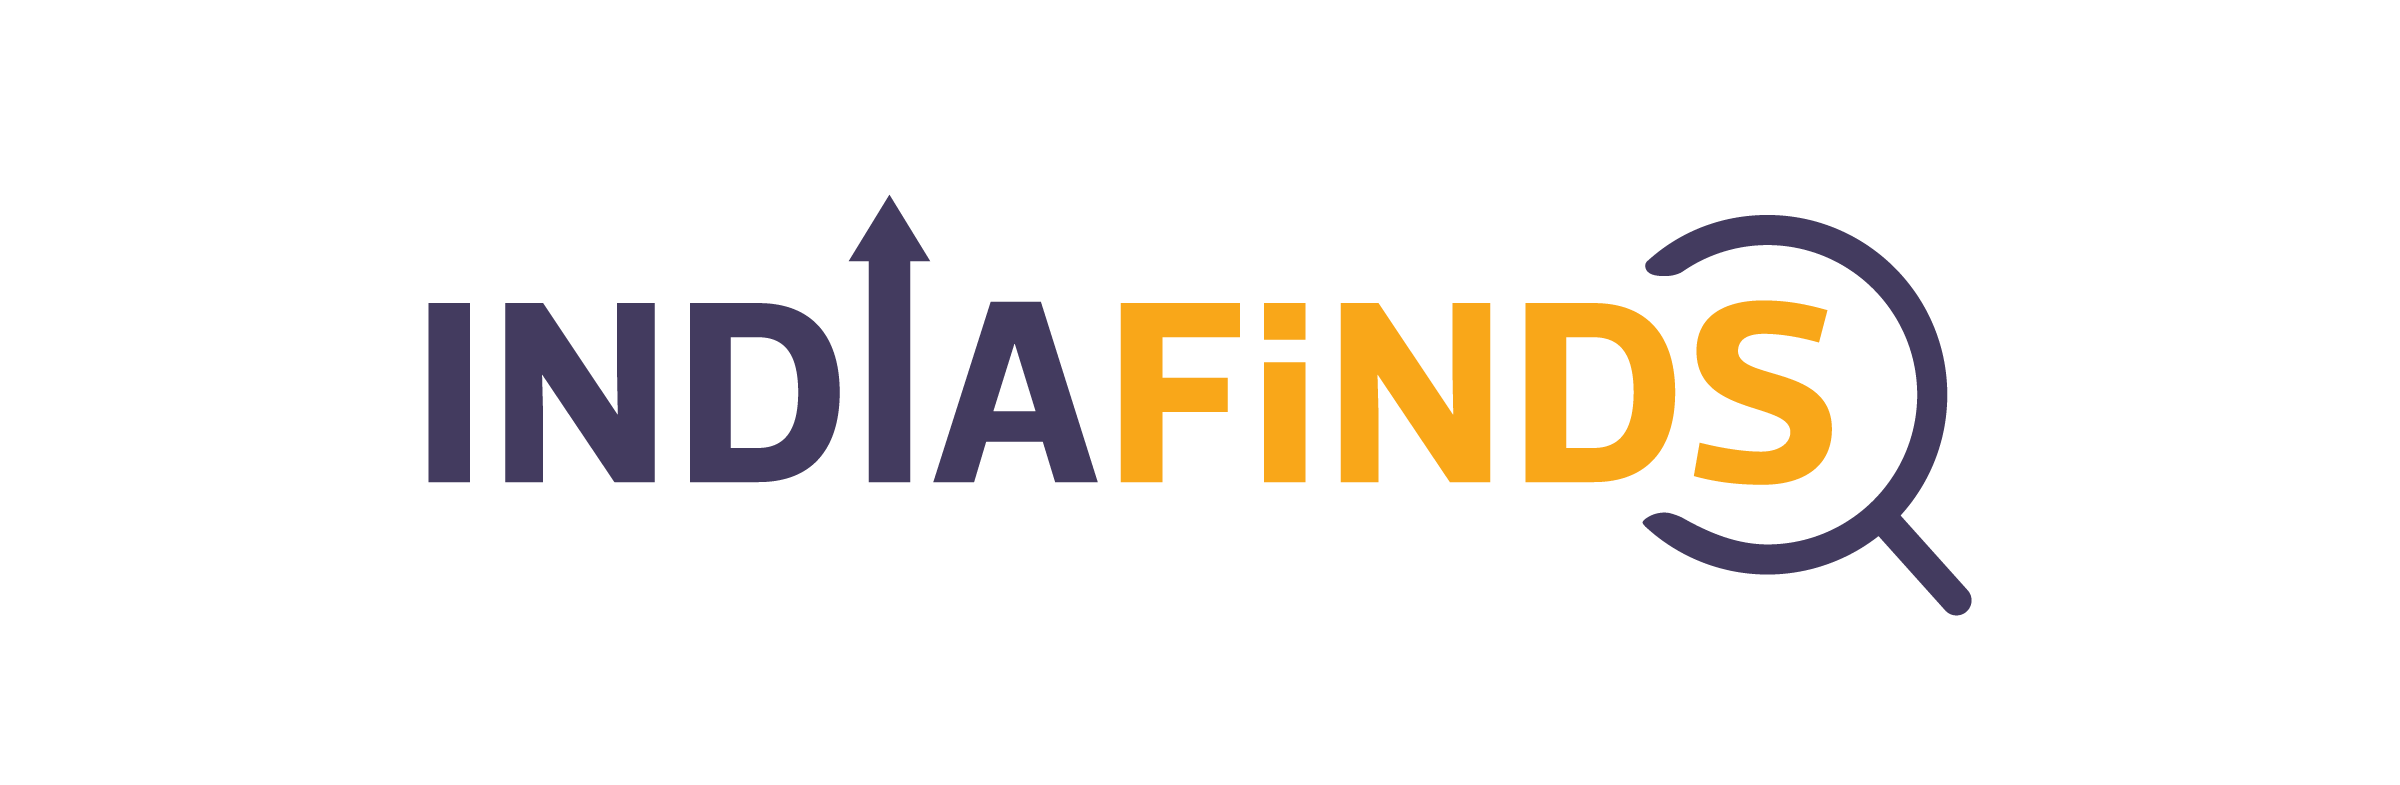 India Finds Logo